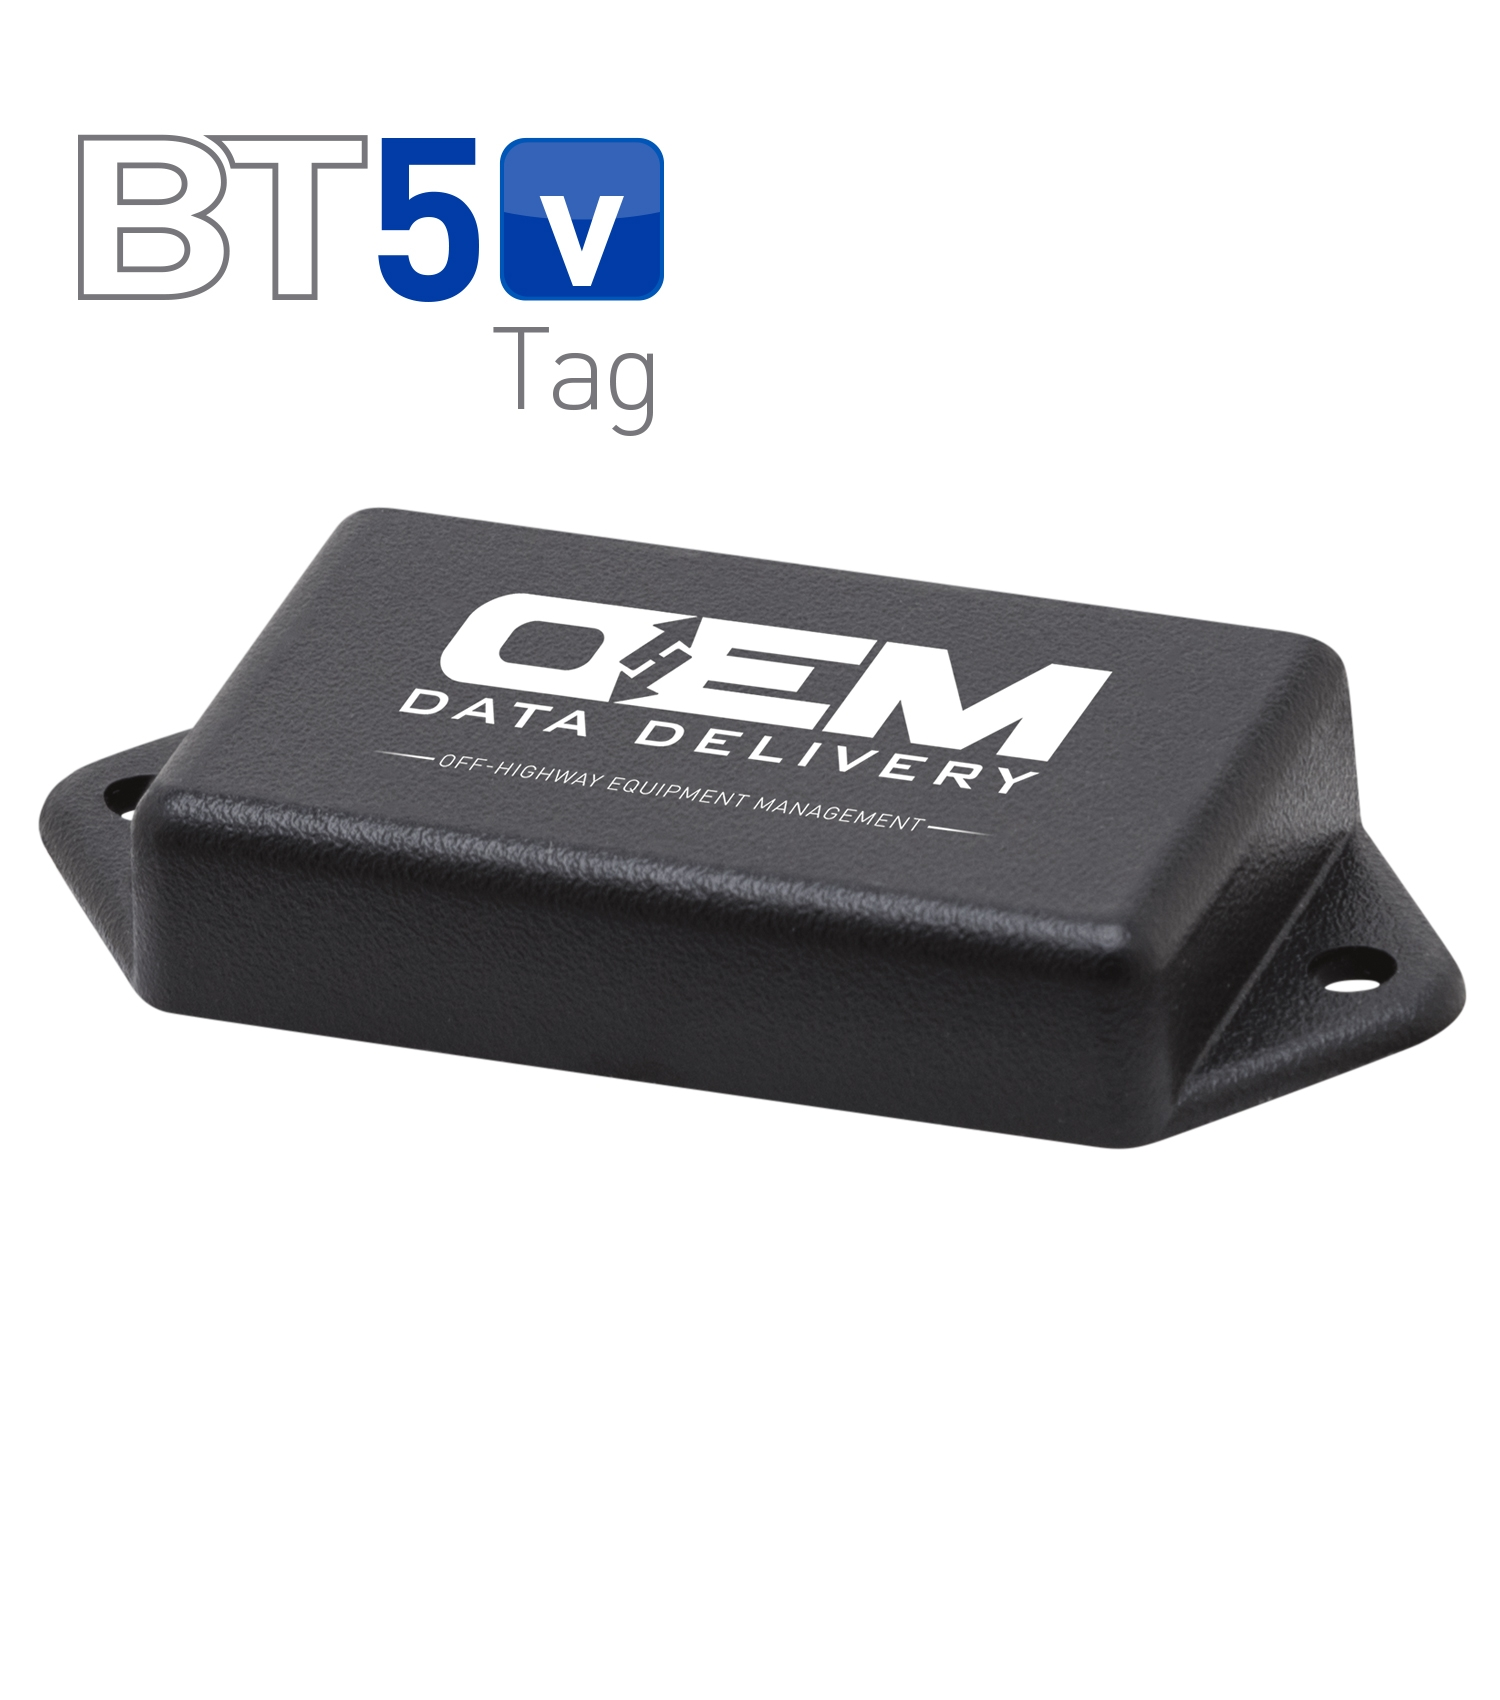 BT5v Tag with Logo